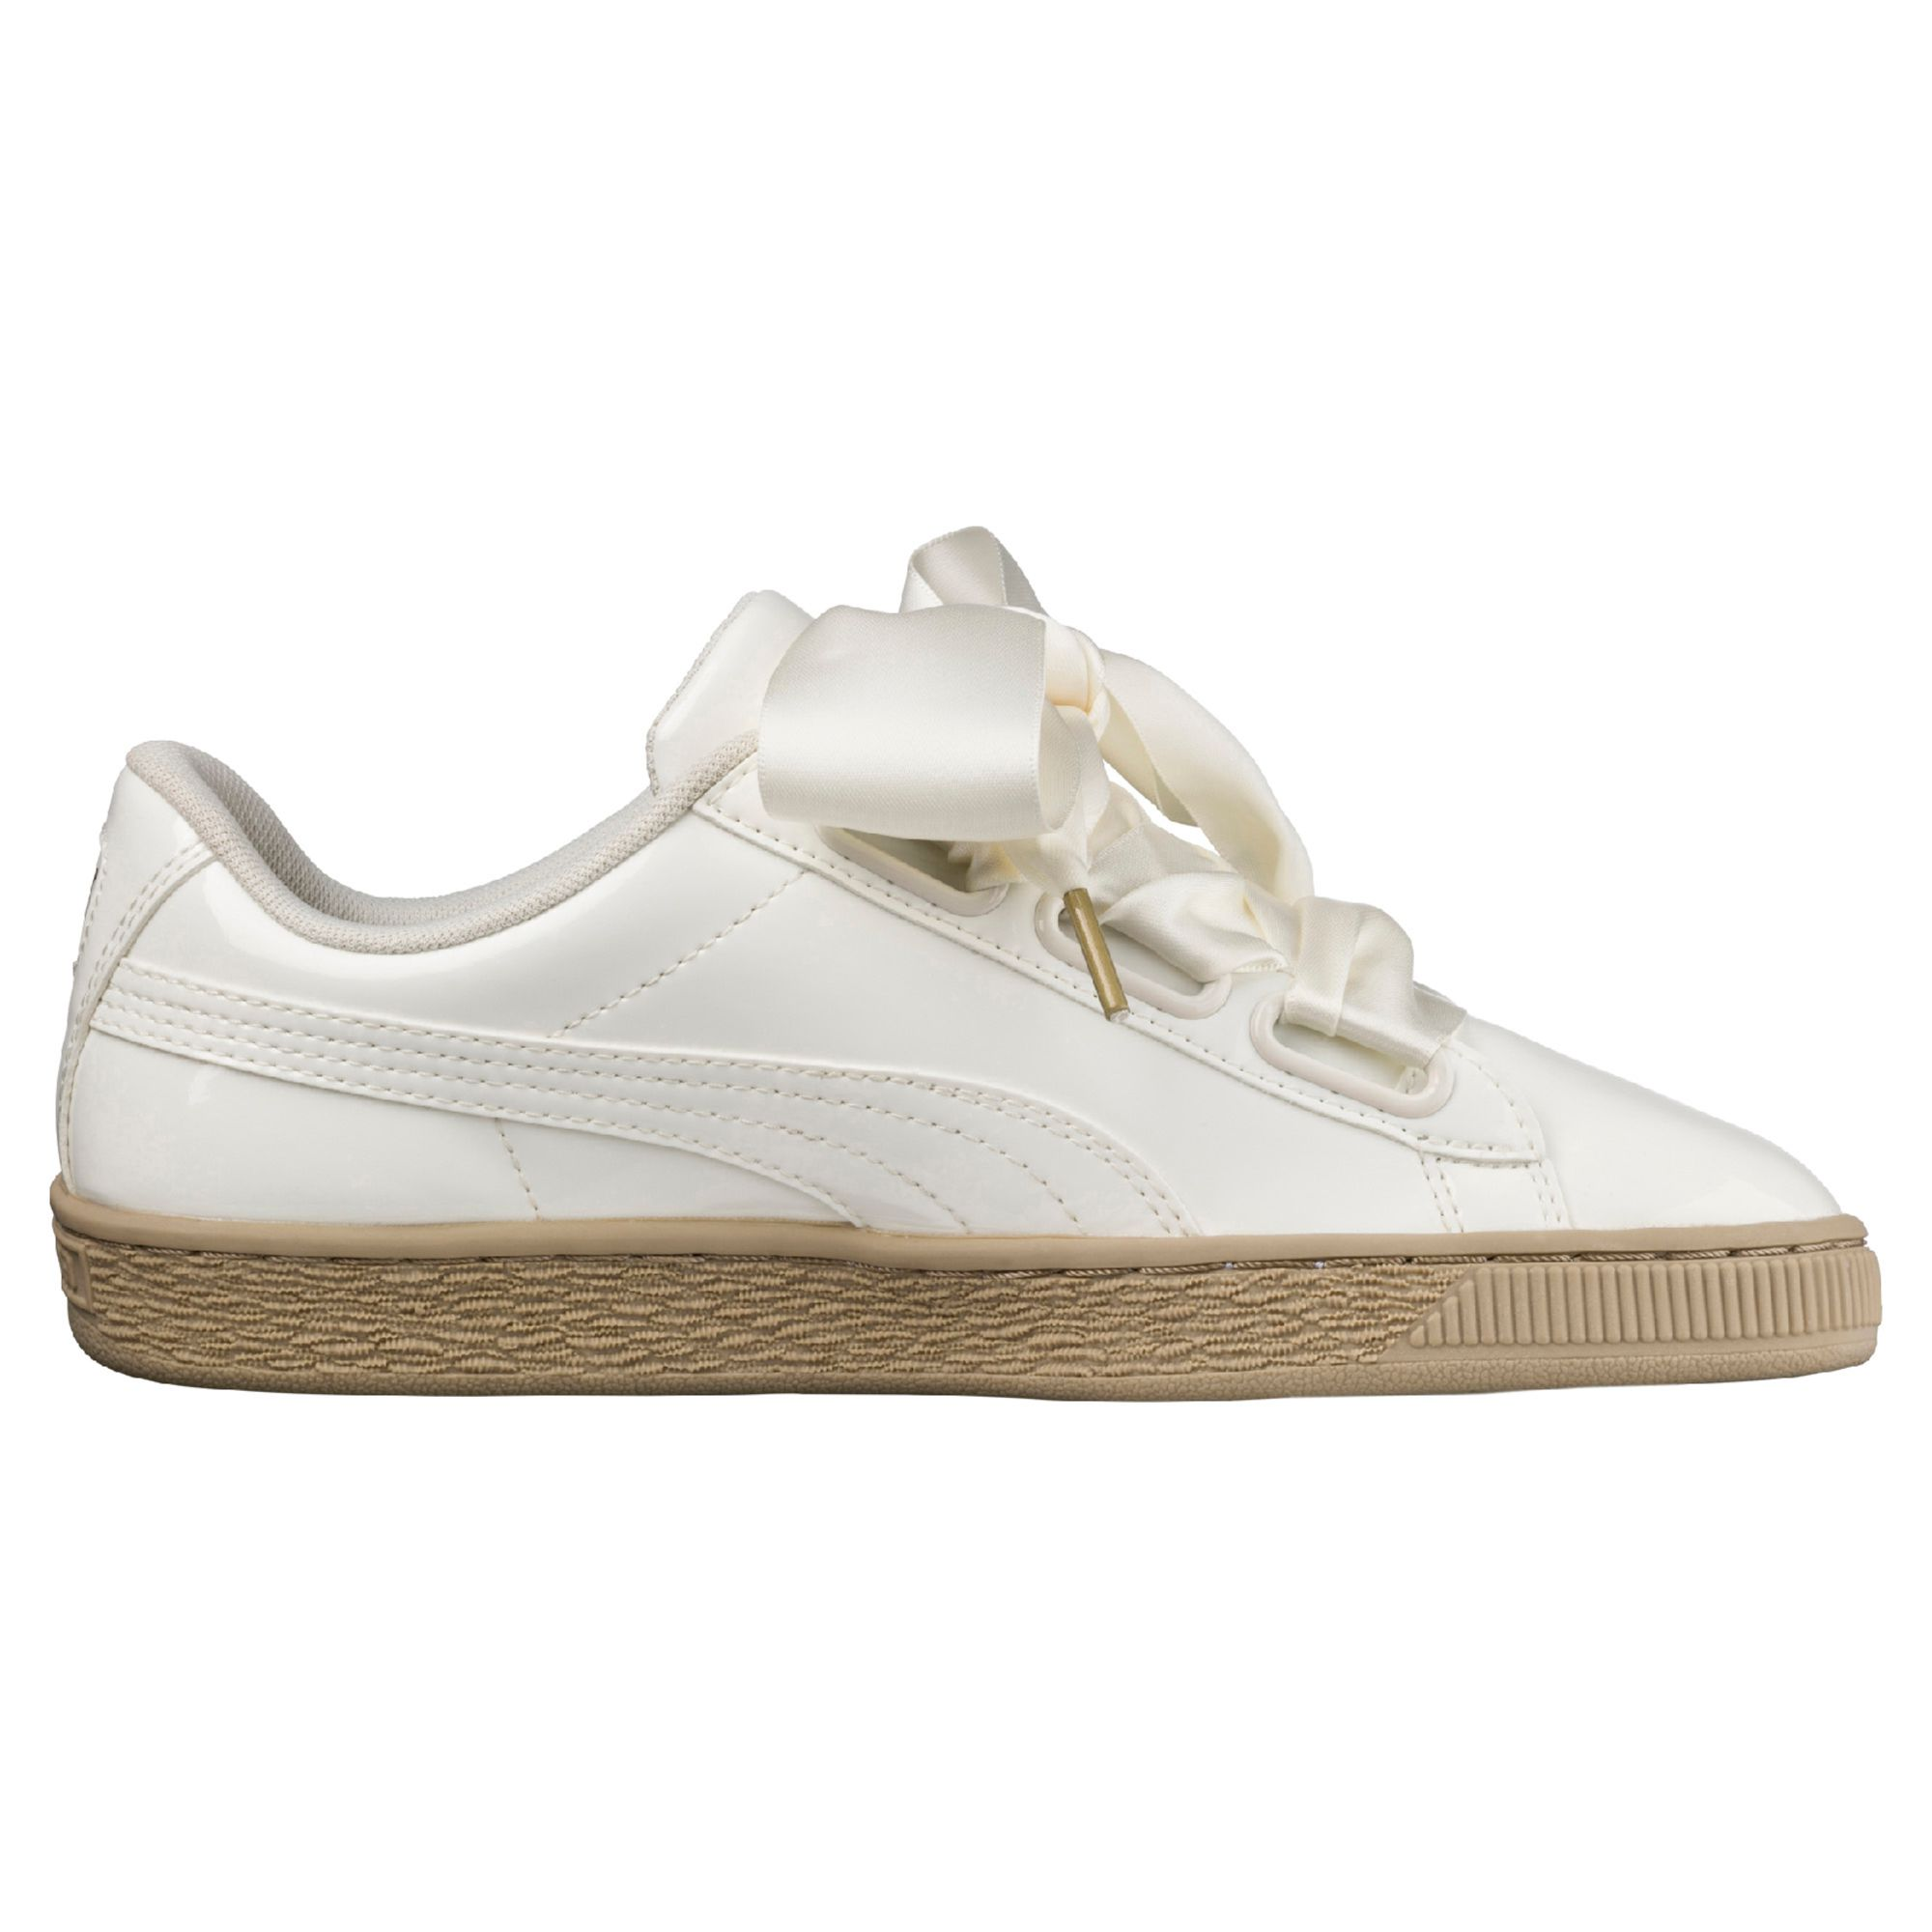 PUMA BASKET HEART MARSHMALLOW